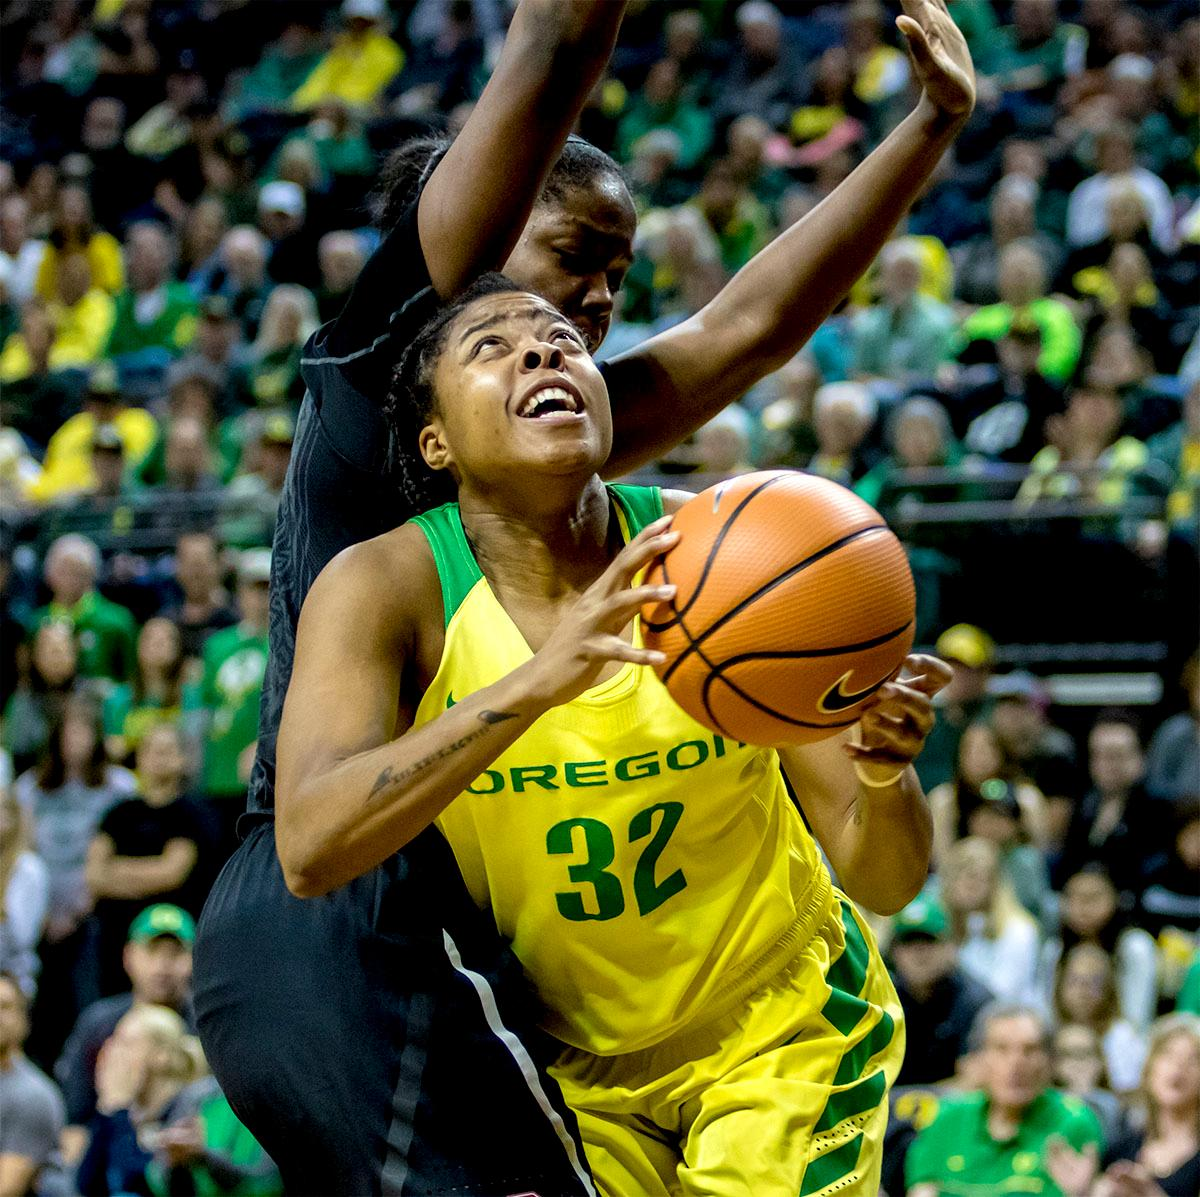 The Duck's Oti Gildon (#32) makes the rebound. The Stanford Cardinal defeated the Oregon Ducks 78-65 on Sunday afternoon at Matthew Knight Arena. Stanford is now 10-2 in conference play and with this loss the Ducks drop to 10-2. Leading the Stanford Cardinal was Brittany McPhee with 33 points, Alanna Smith with 14 points, and Kiana Williams with 14 points. For the Ducks Sabrina Ionescu led with 22 points, Ruthy Hebard added 16 points, and Satou Sabally put in 14 points. Photo by August Frank, Oregon News Lab